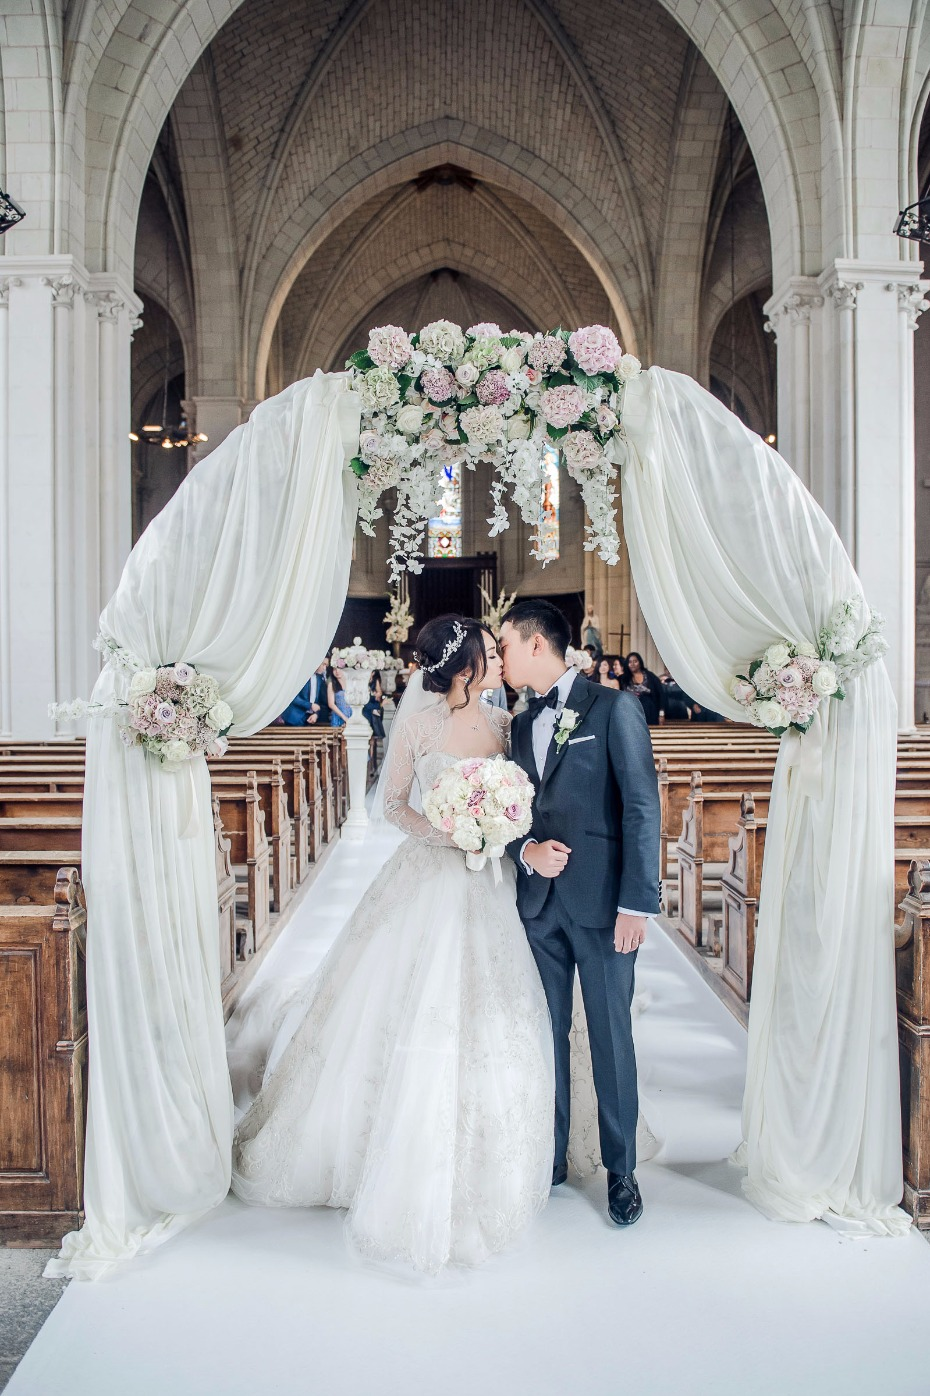 romantic wedding arch for your classic cathedral wedding ceremony